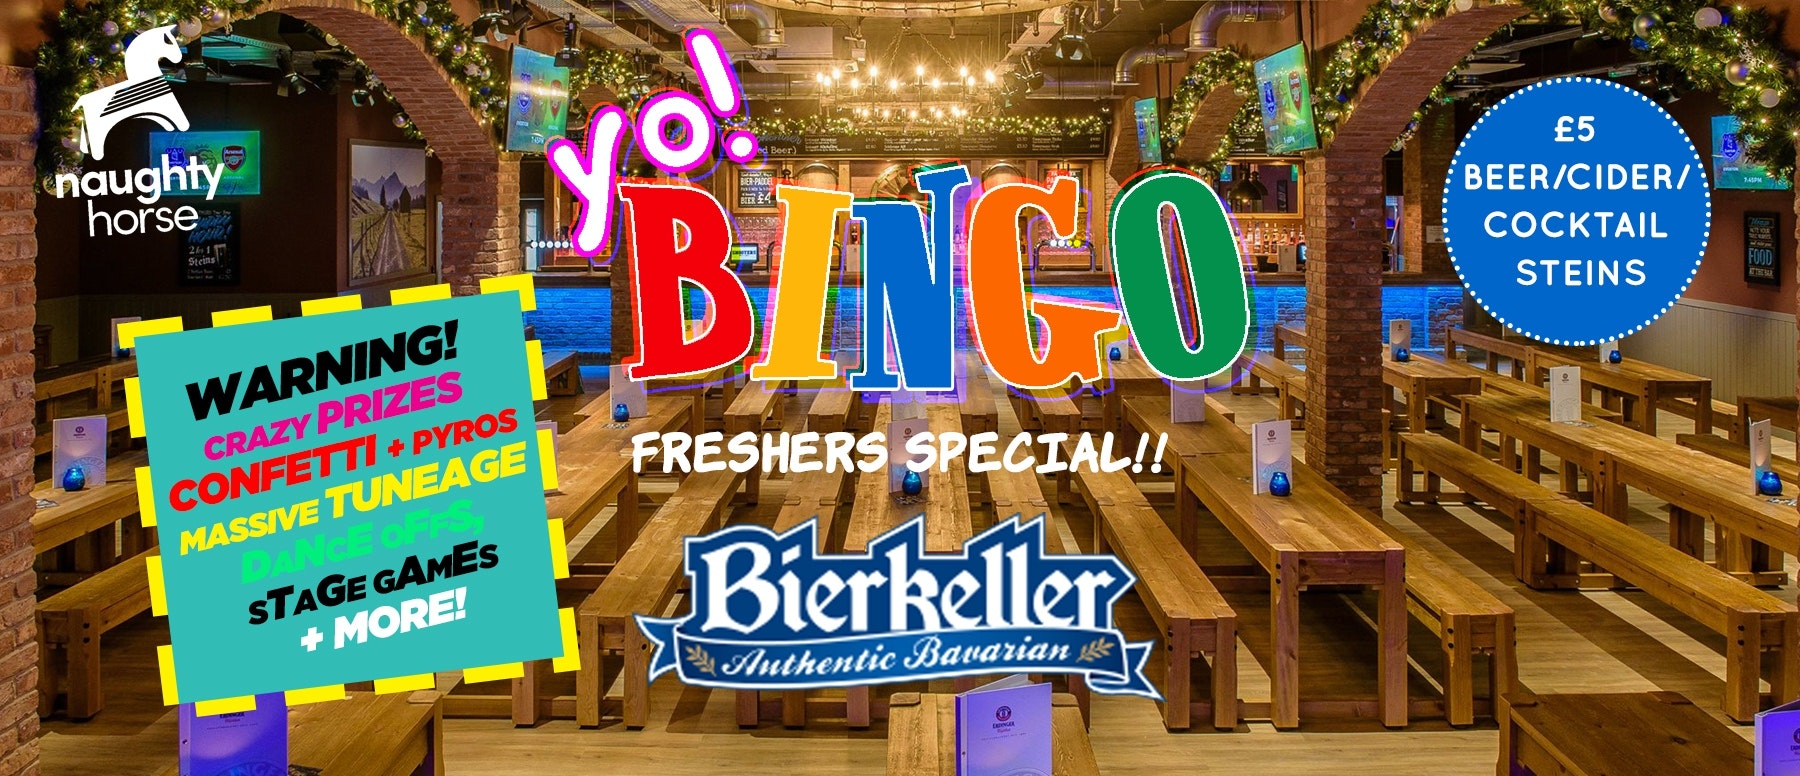 Freshers 2021 Rave Bingo! £5 steins all night long! LIMITED £1 tickets NOW ON SALE!